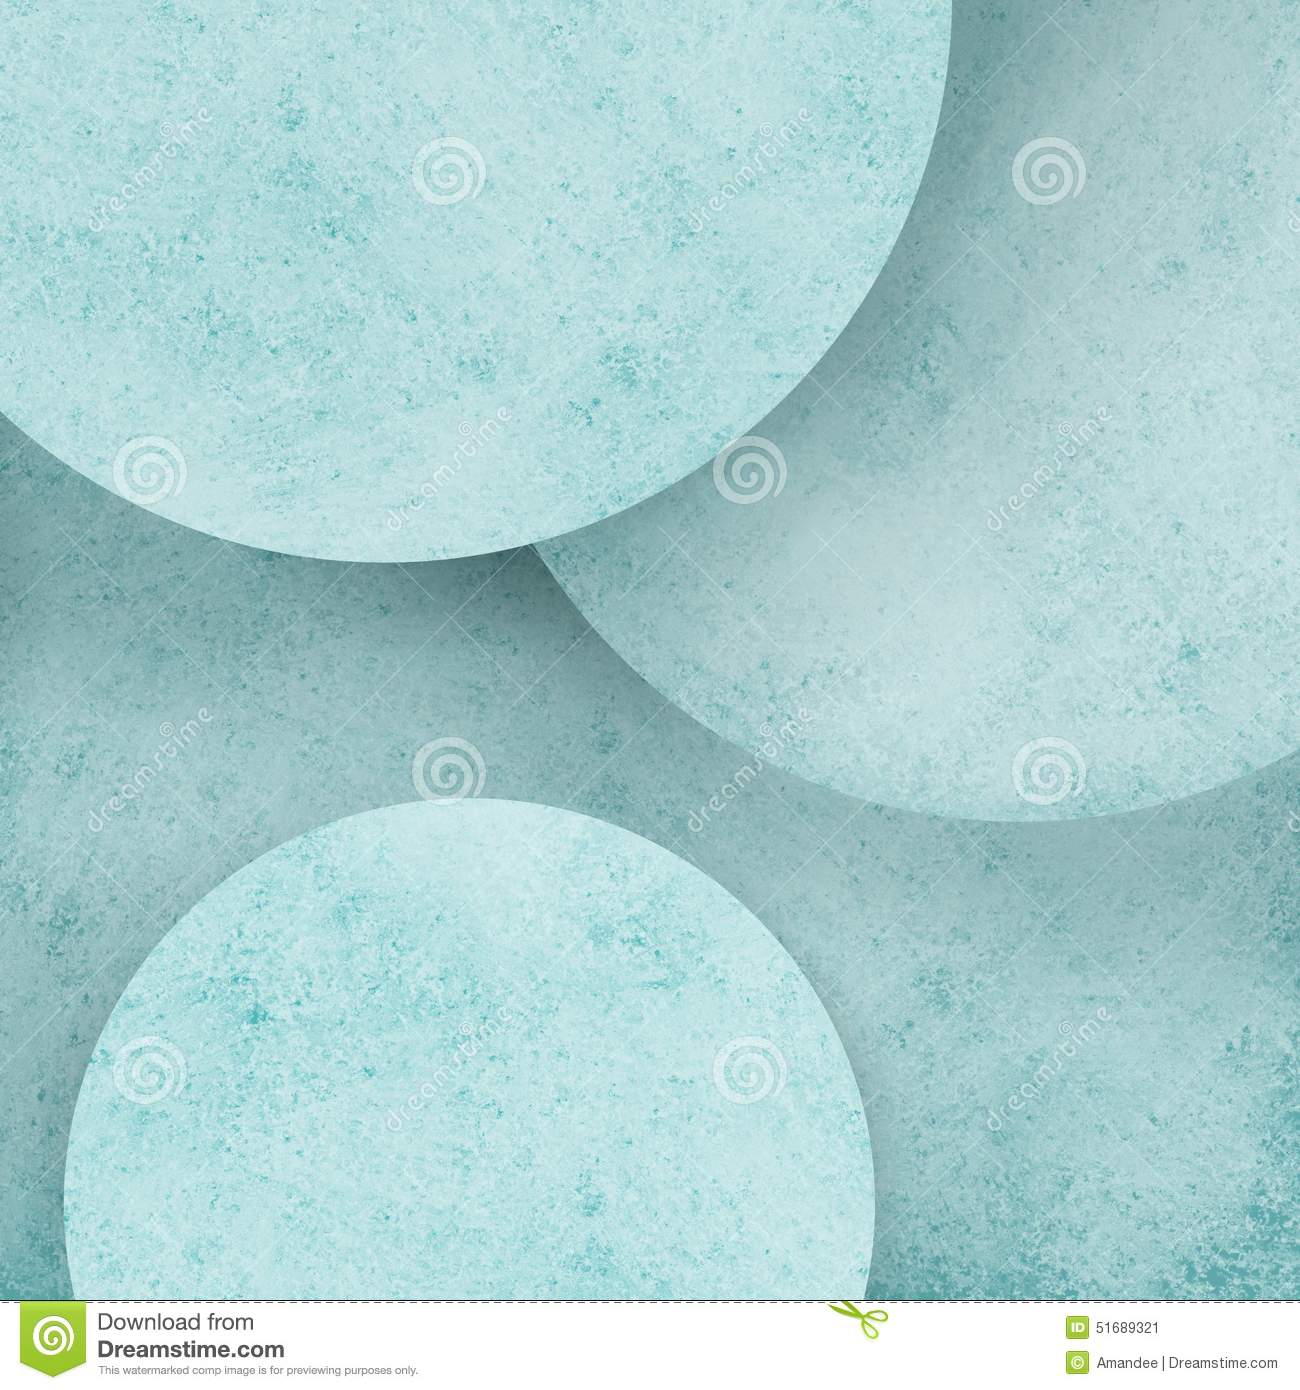 Abstract pastel blue circle geometric background with layers of round circles with distressed texture design